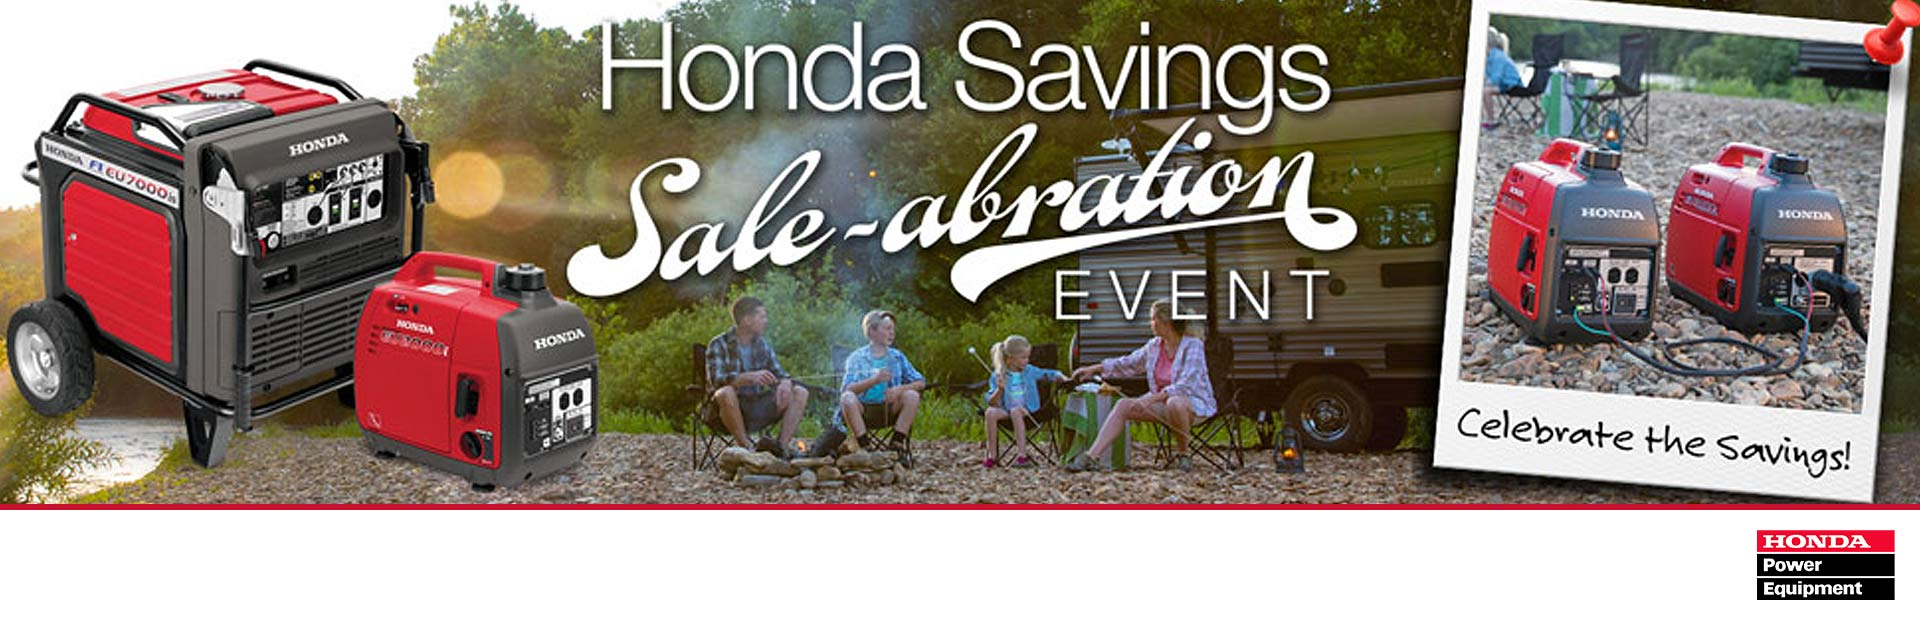 Honda Power Equipment: Honda Savings Sale-abration Event